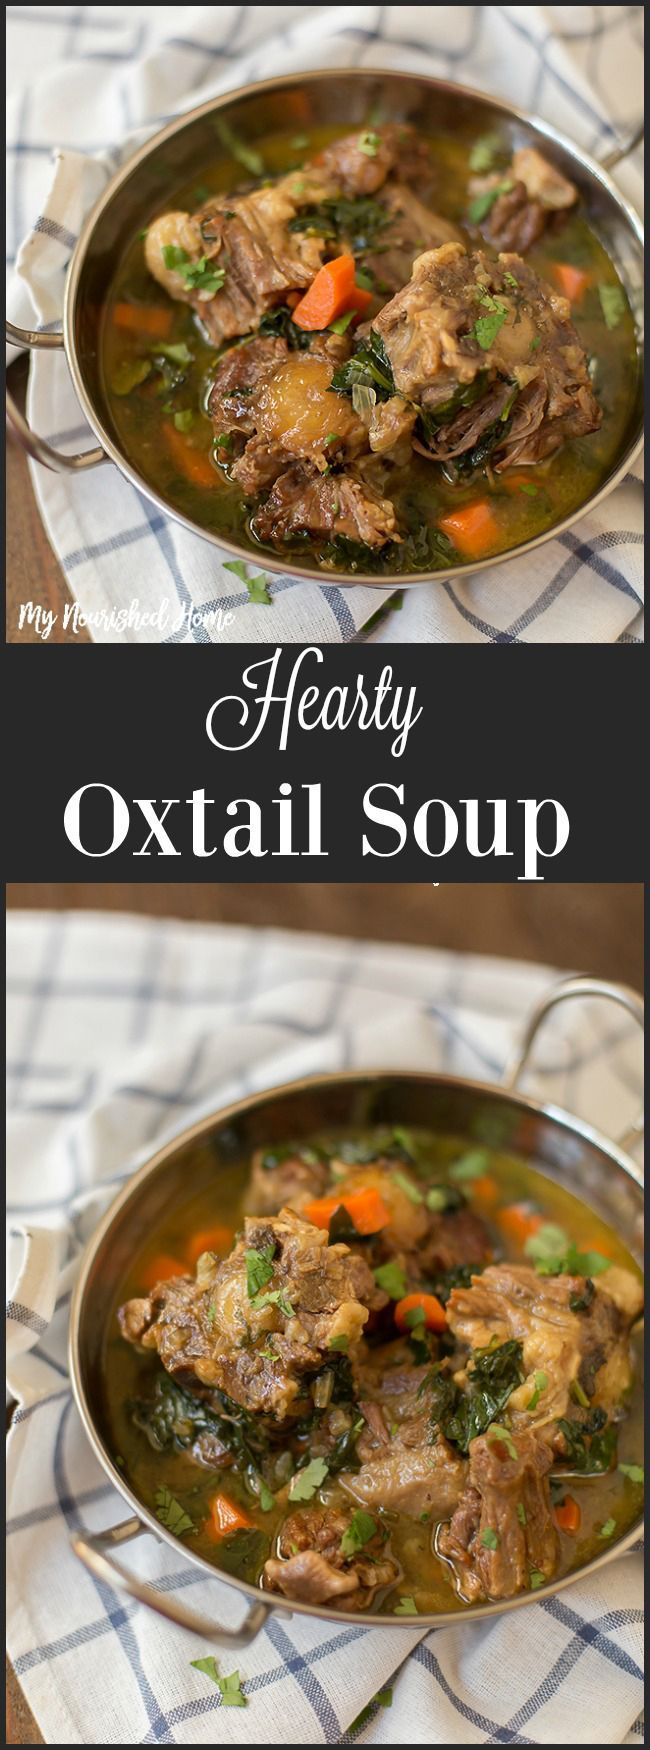 This Hearty Oxtail Soup Recipe Is Thicker Than A Soup But Not Quite A Stew